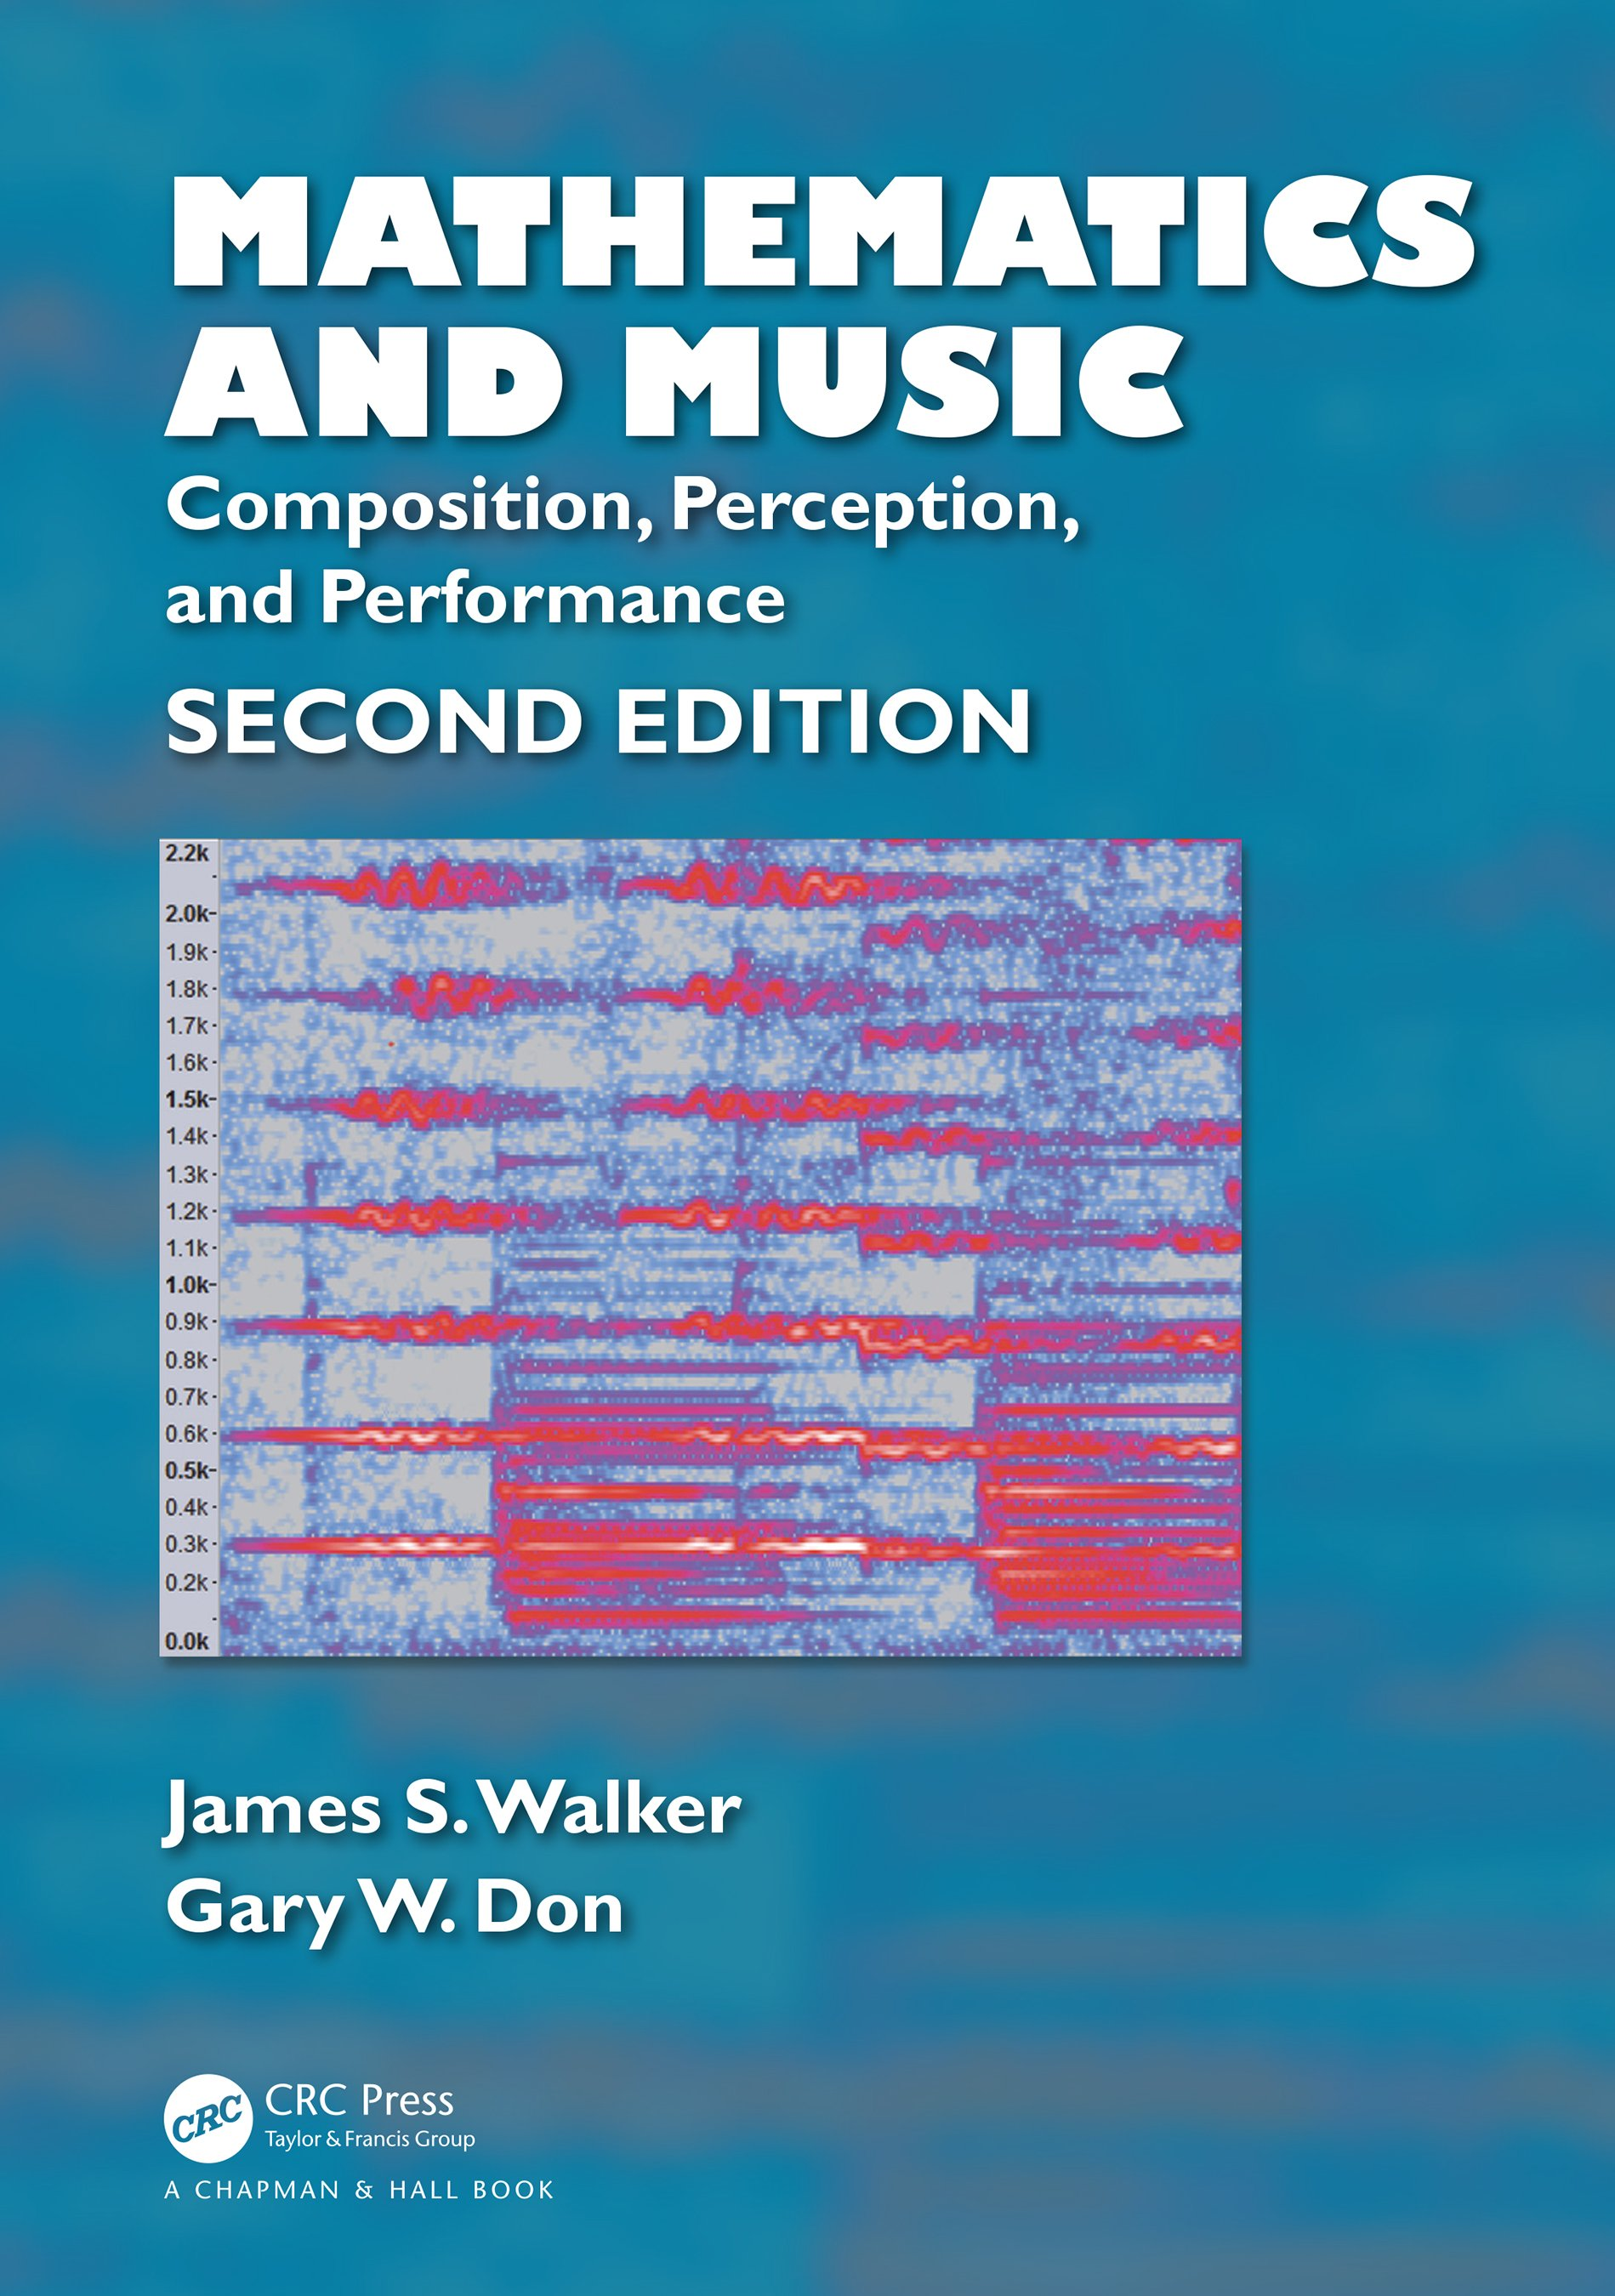 Mathematics and Music: Composition, Perception, and Performance book cover